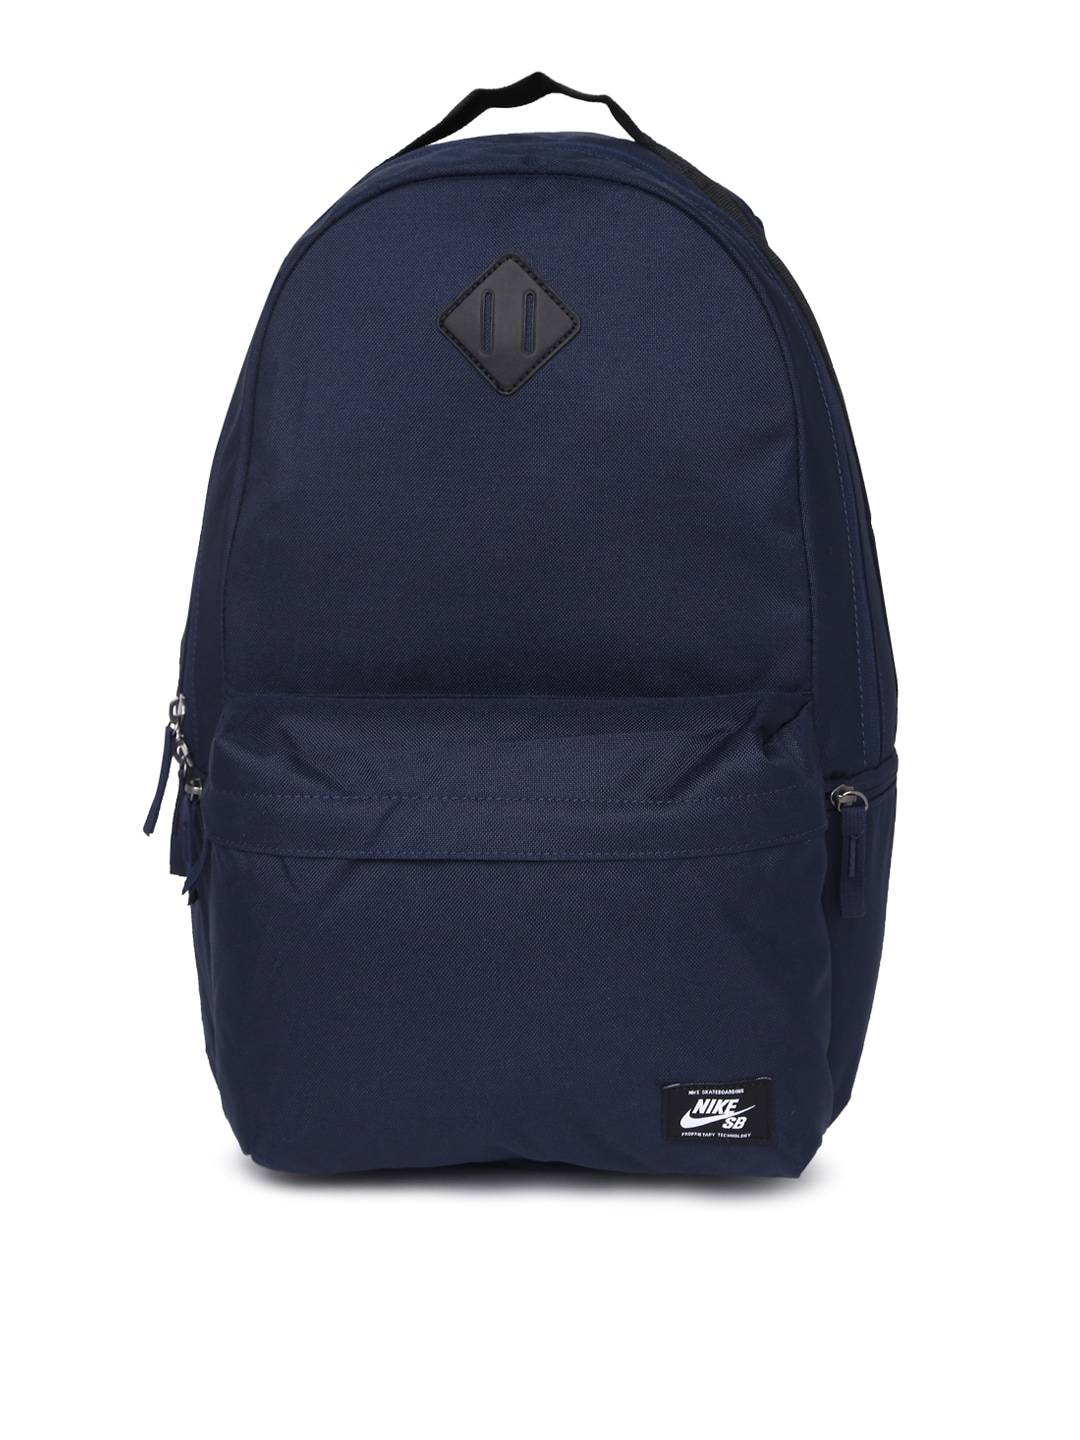 Nike College Bags - Buy Nike College Bags Online in India 73c18d7d721aa